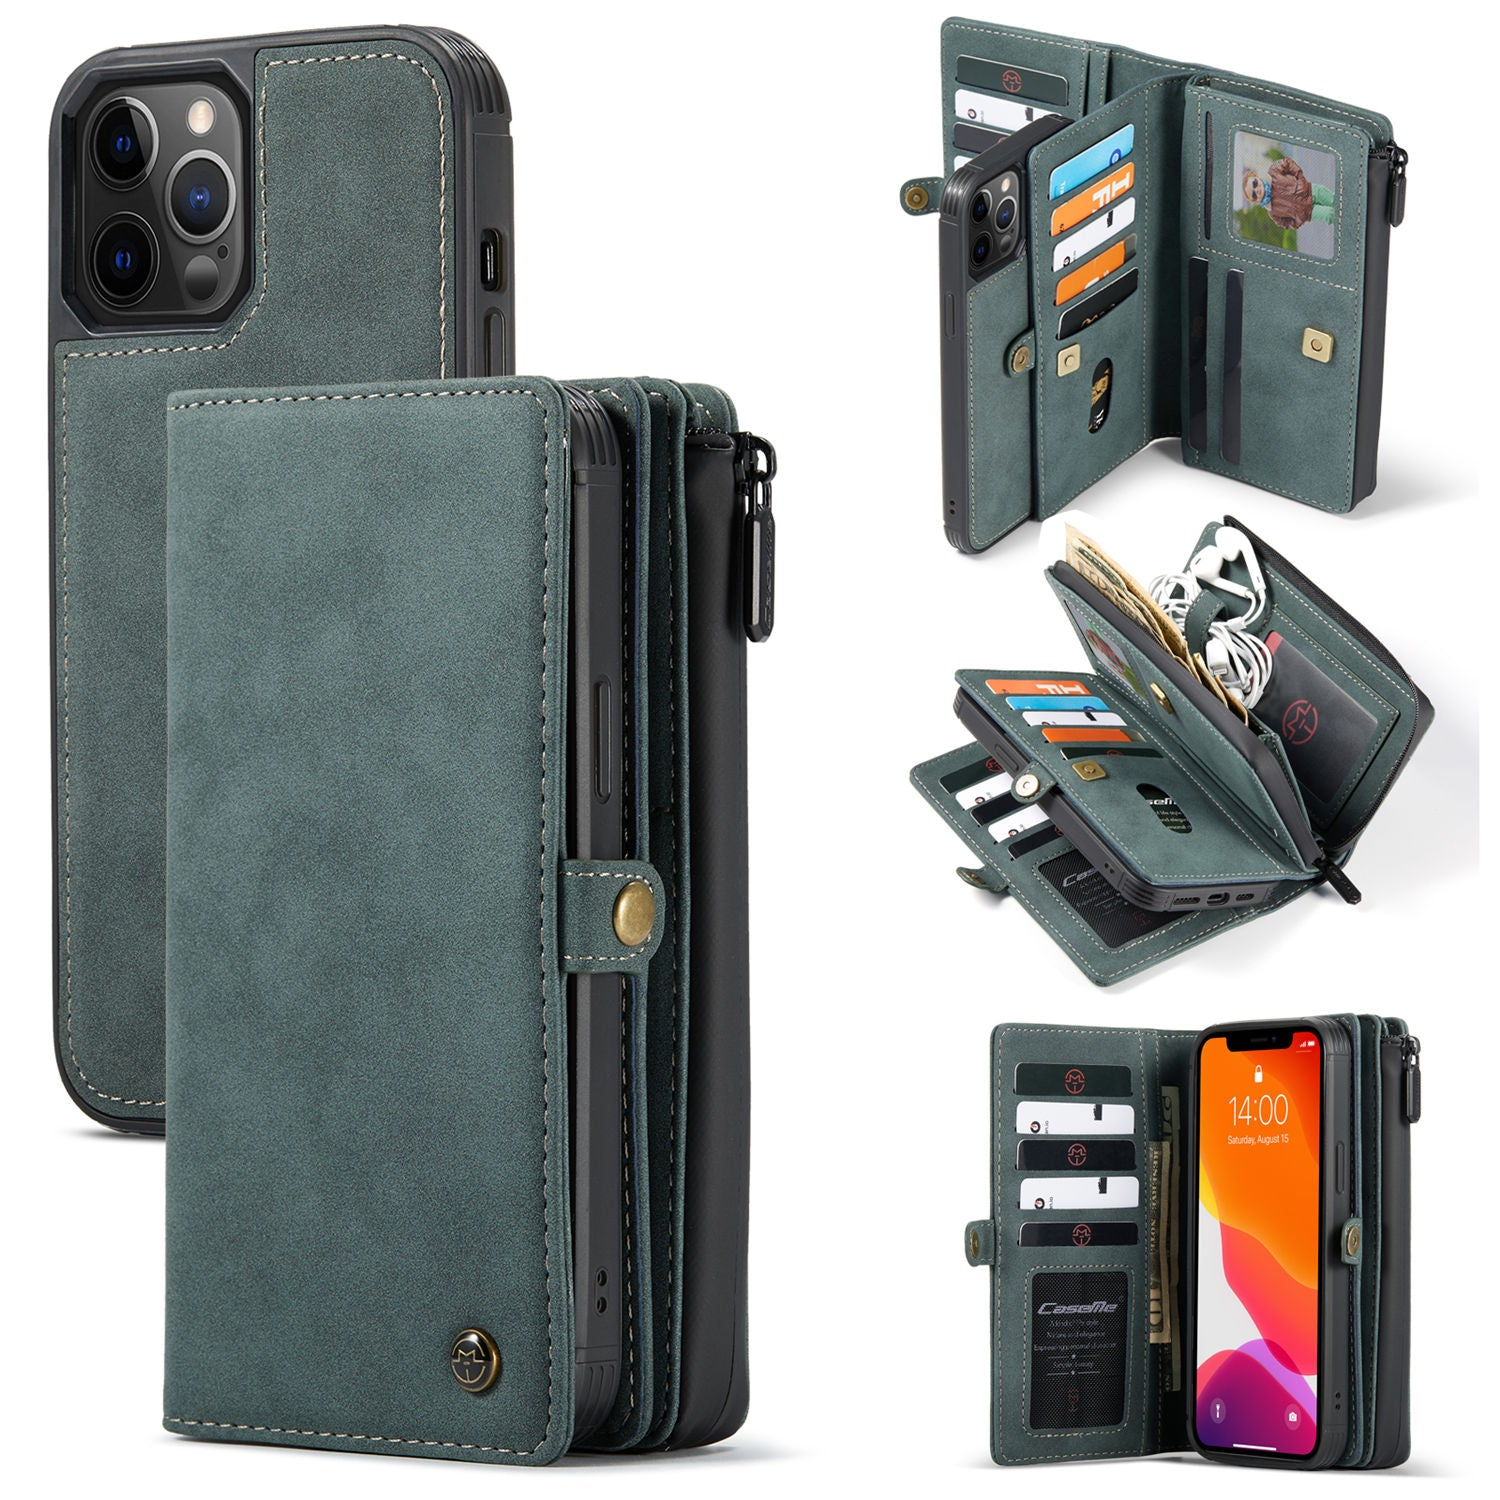 CaseMe Wallet Case For iPhone 12 mini/iPhone 12 Por Max Zipper Wallet Leather Original Zipper Flip Wallet Leather for 12 Por Max